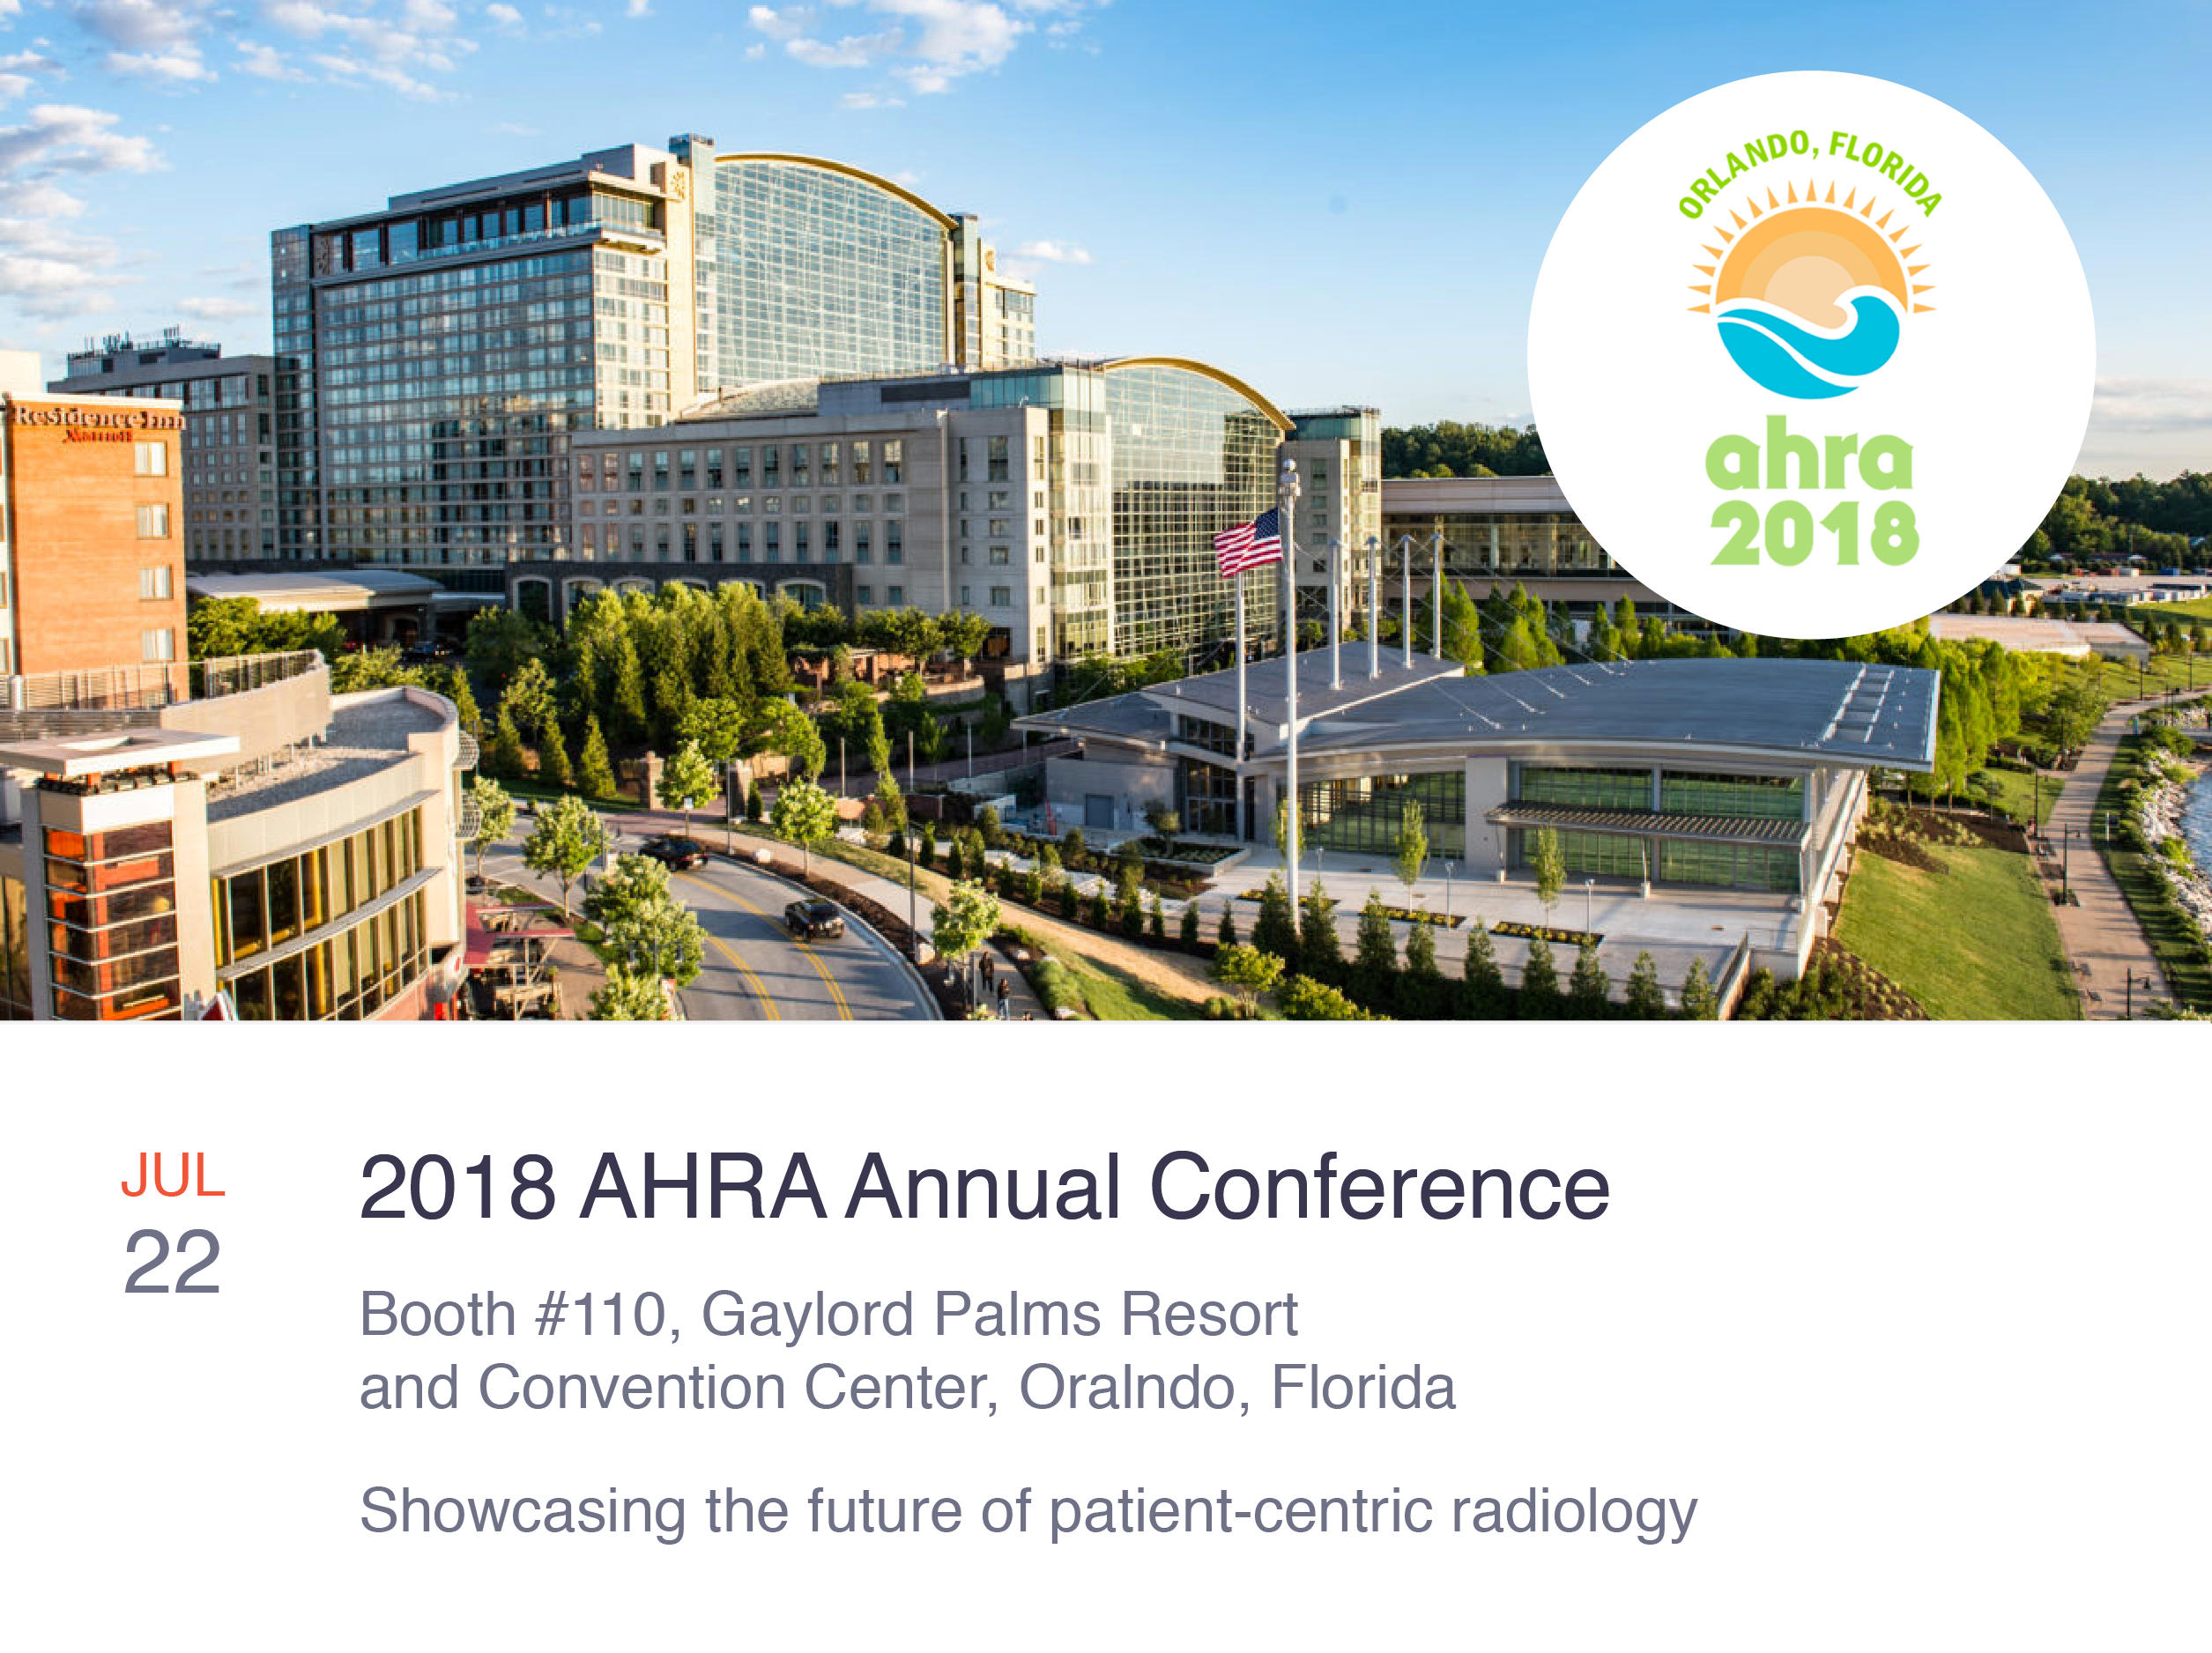 PocketHealth Attending the 2018 AHRA Annual Meeting